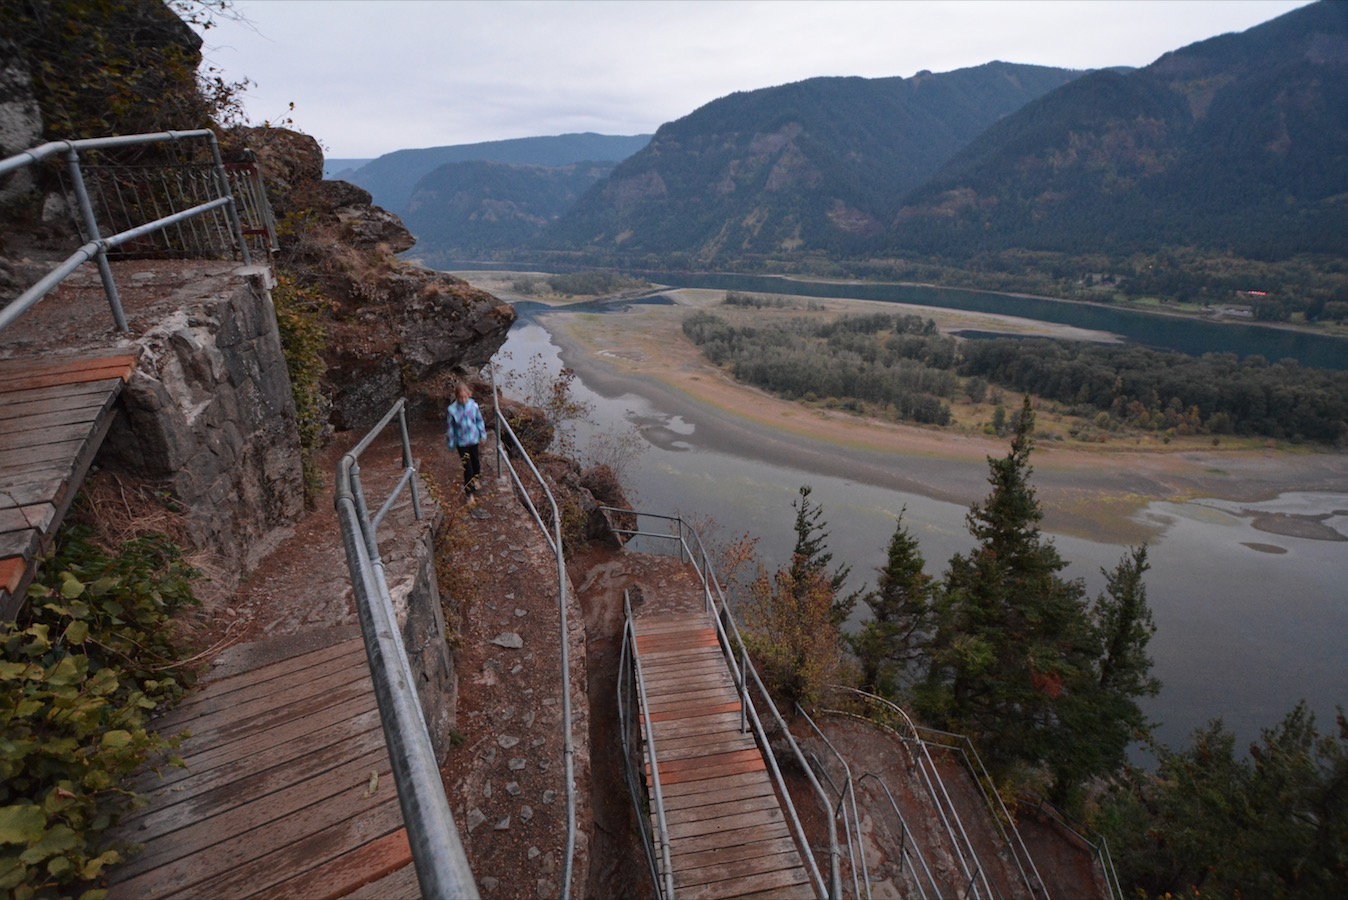 A girl hikes down from Beacon Rock in Beacon Rock State Park in the Columbia River Gorge, Oregon